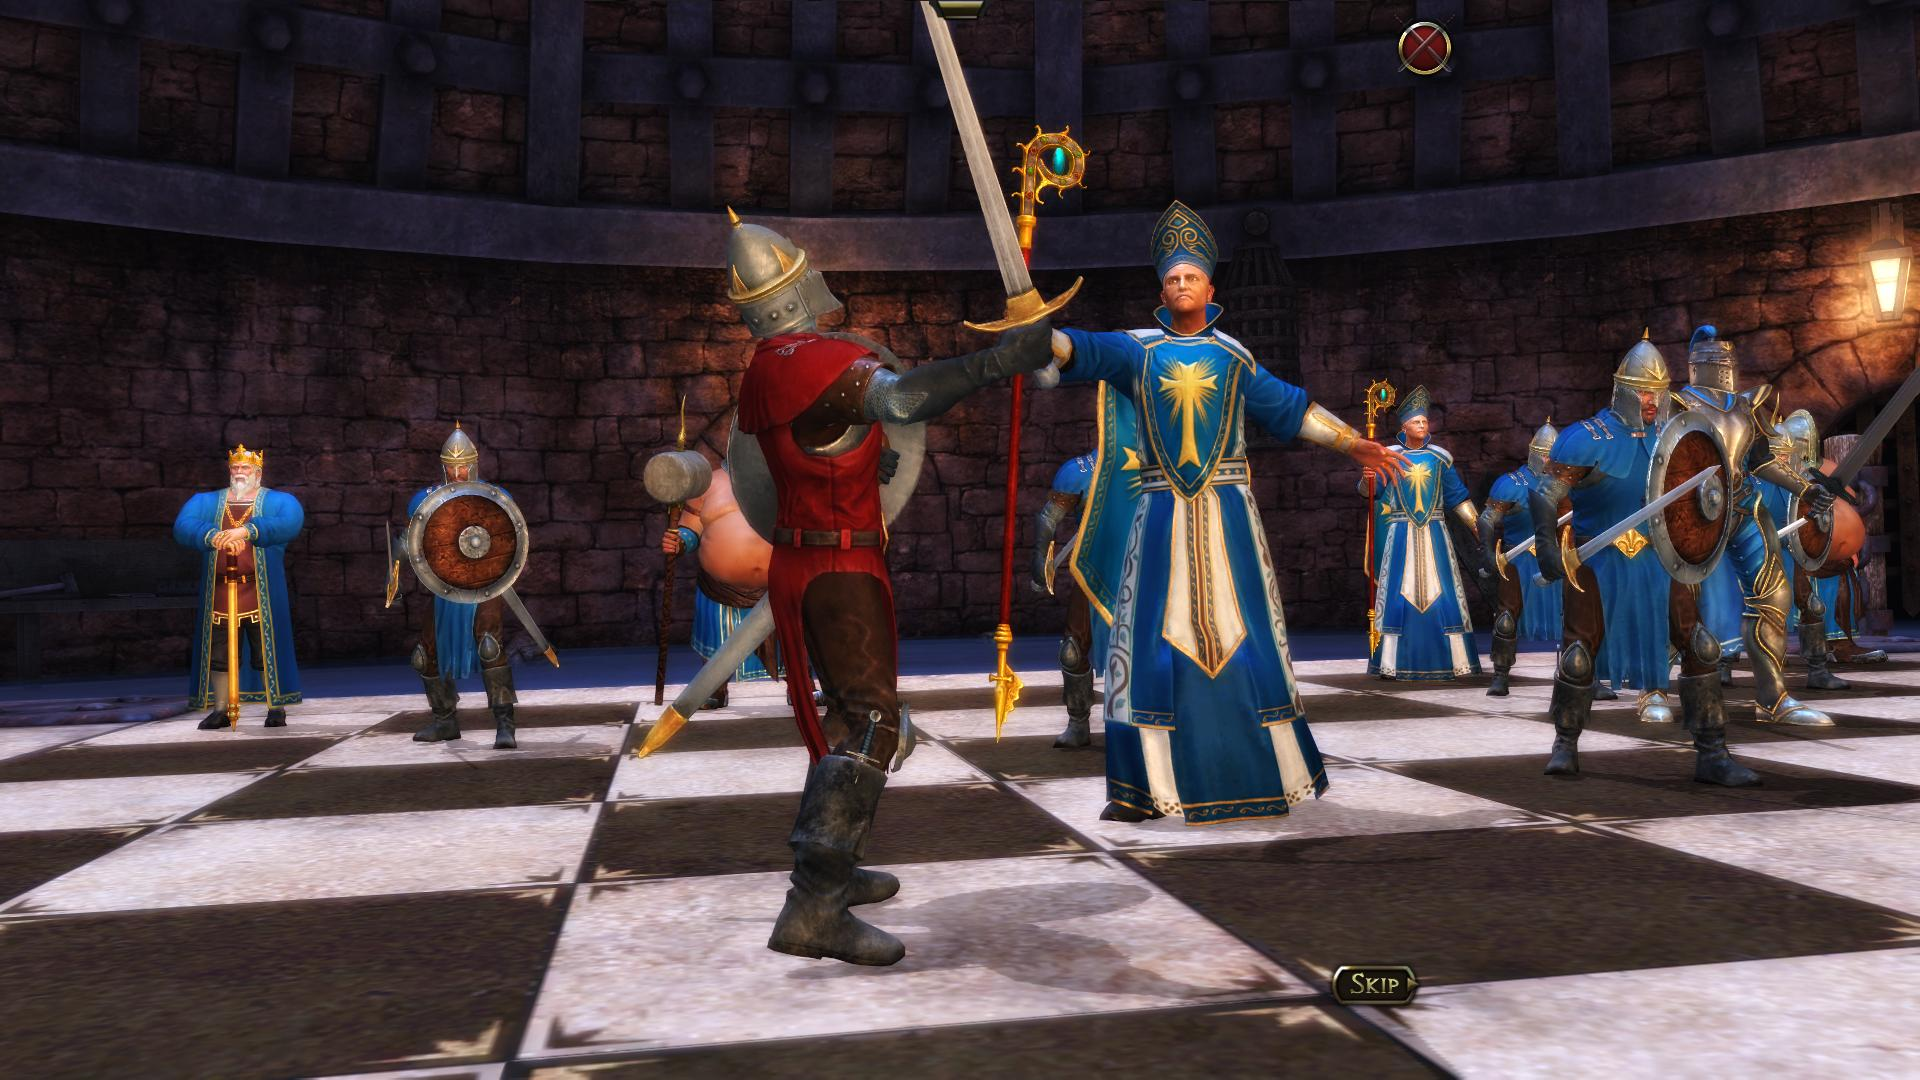 Download battle chess 3d on pc & mac with appkiwi apk downloader.